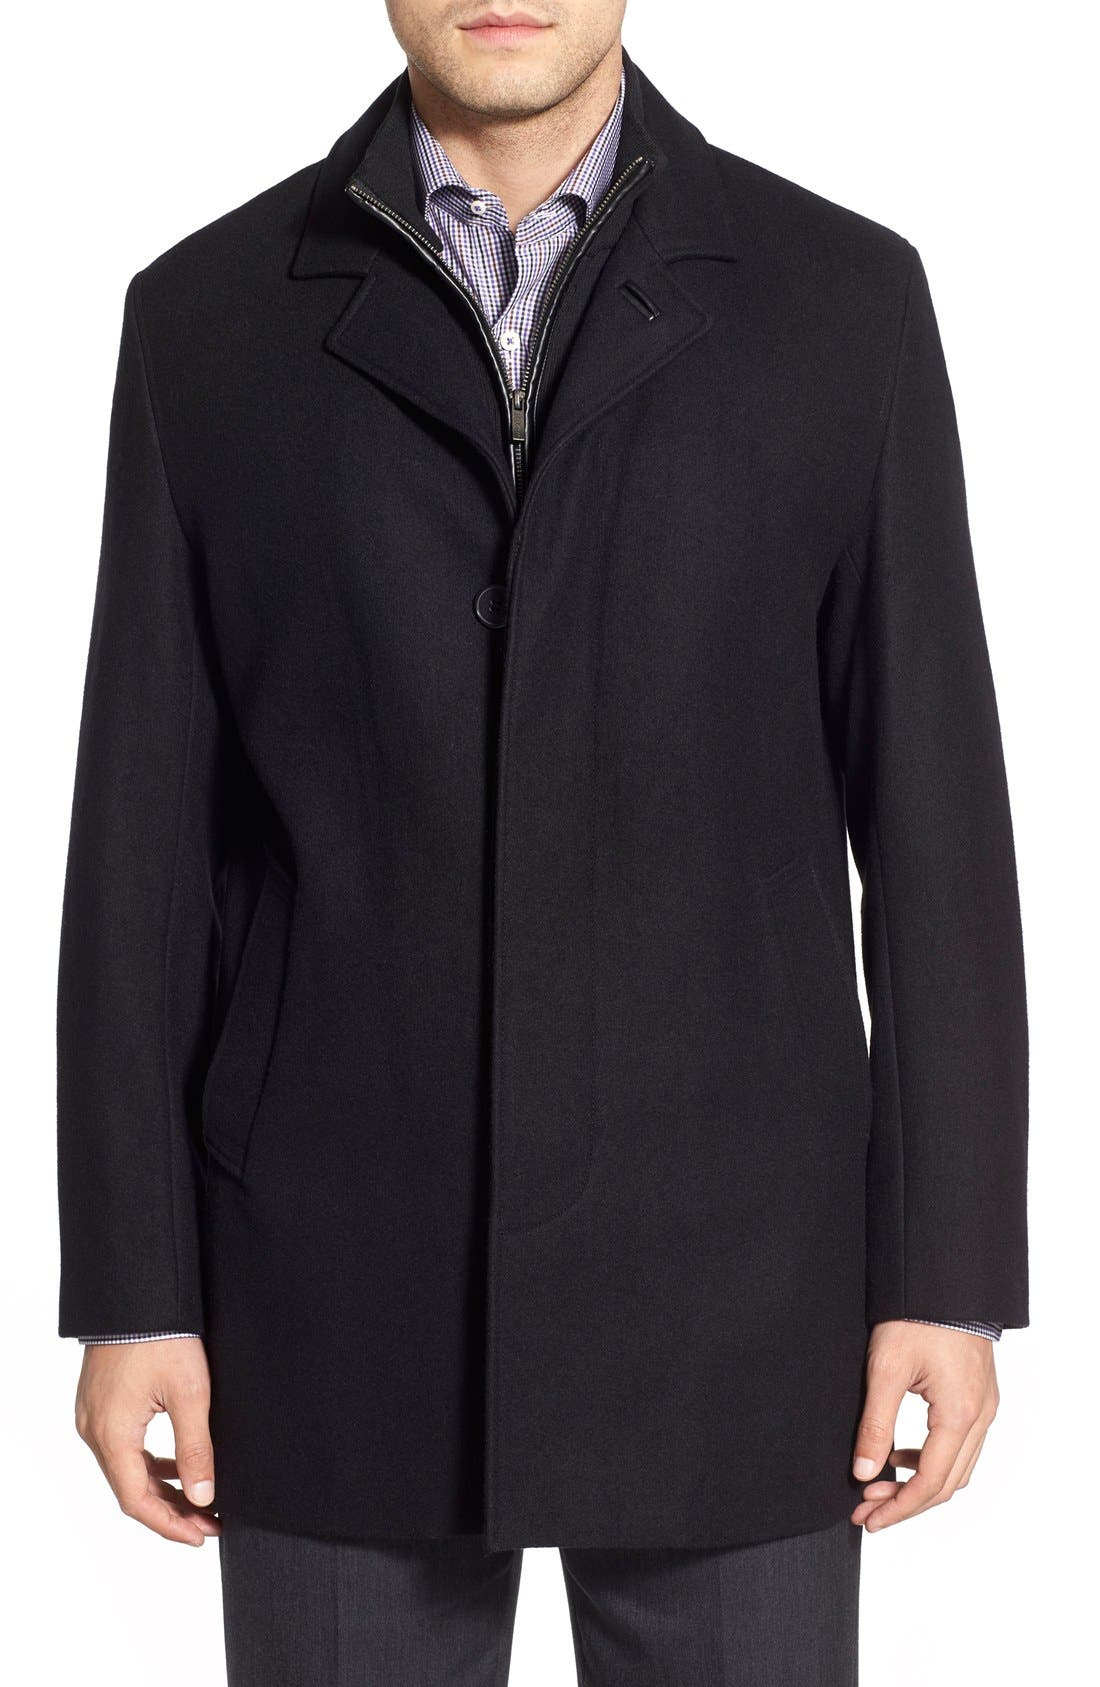 Alternate Image 1 Selected - Cole Haan Wool Blend Topcoat with Inset Knit Bib